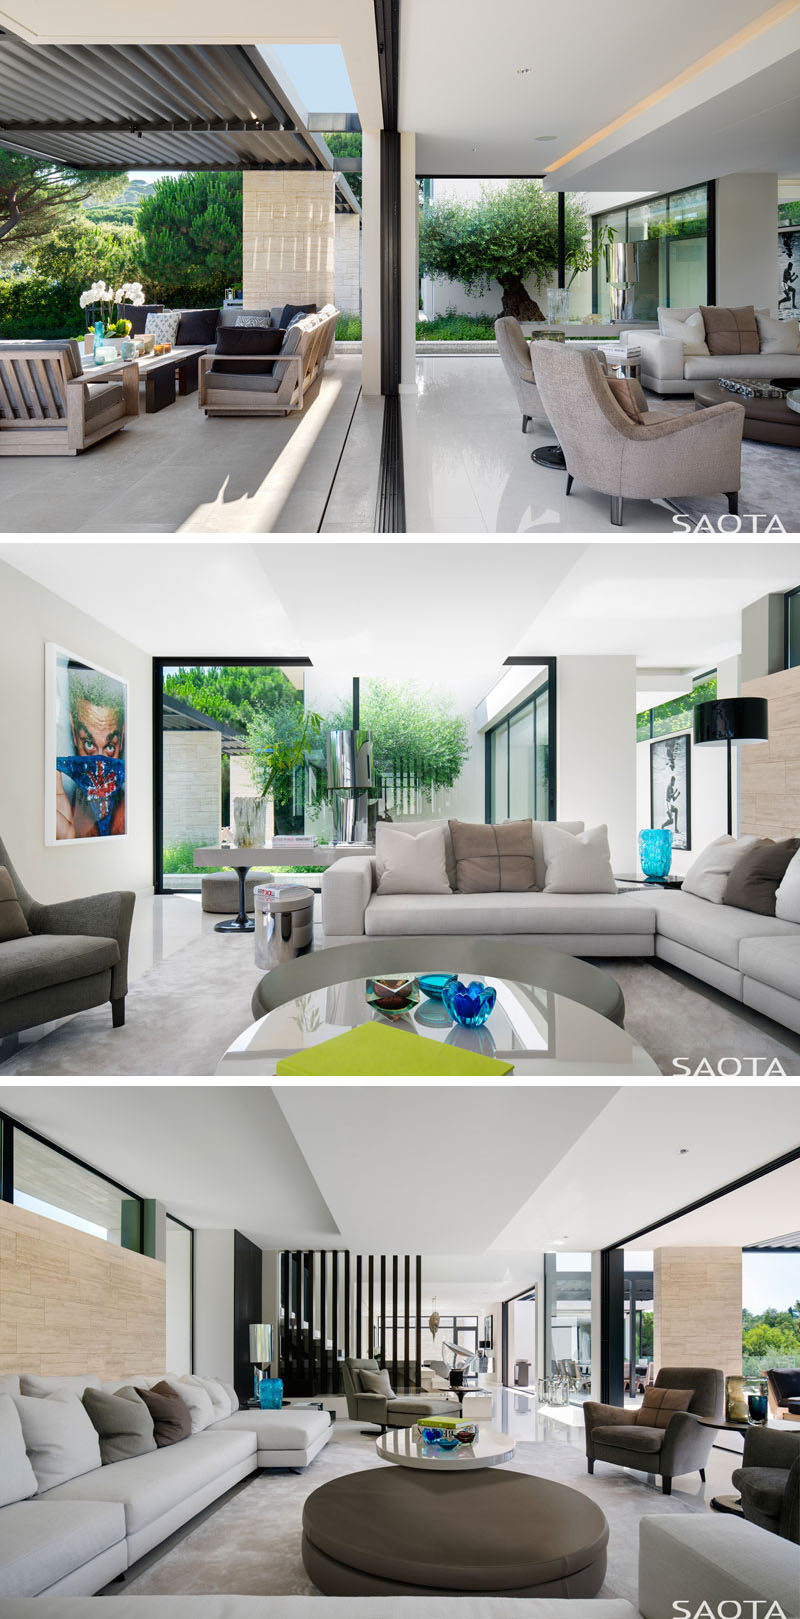 The interior spaces of this modern house open up to the terrace, creating a seamless indoor/outdoor living experience. In the living room, comfortable furnishings surround a coffee table. #ModernLivingRoom #LivingRoom